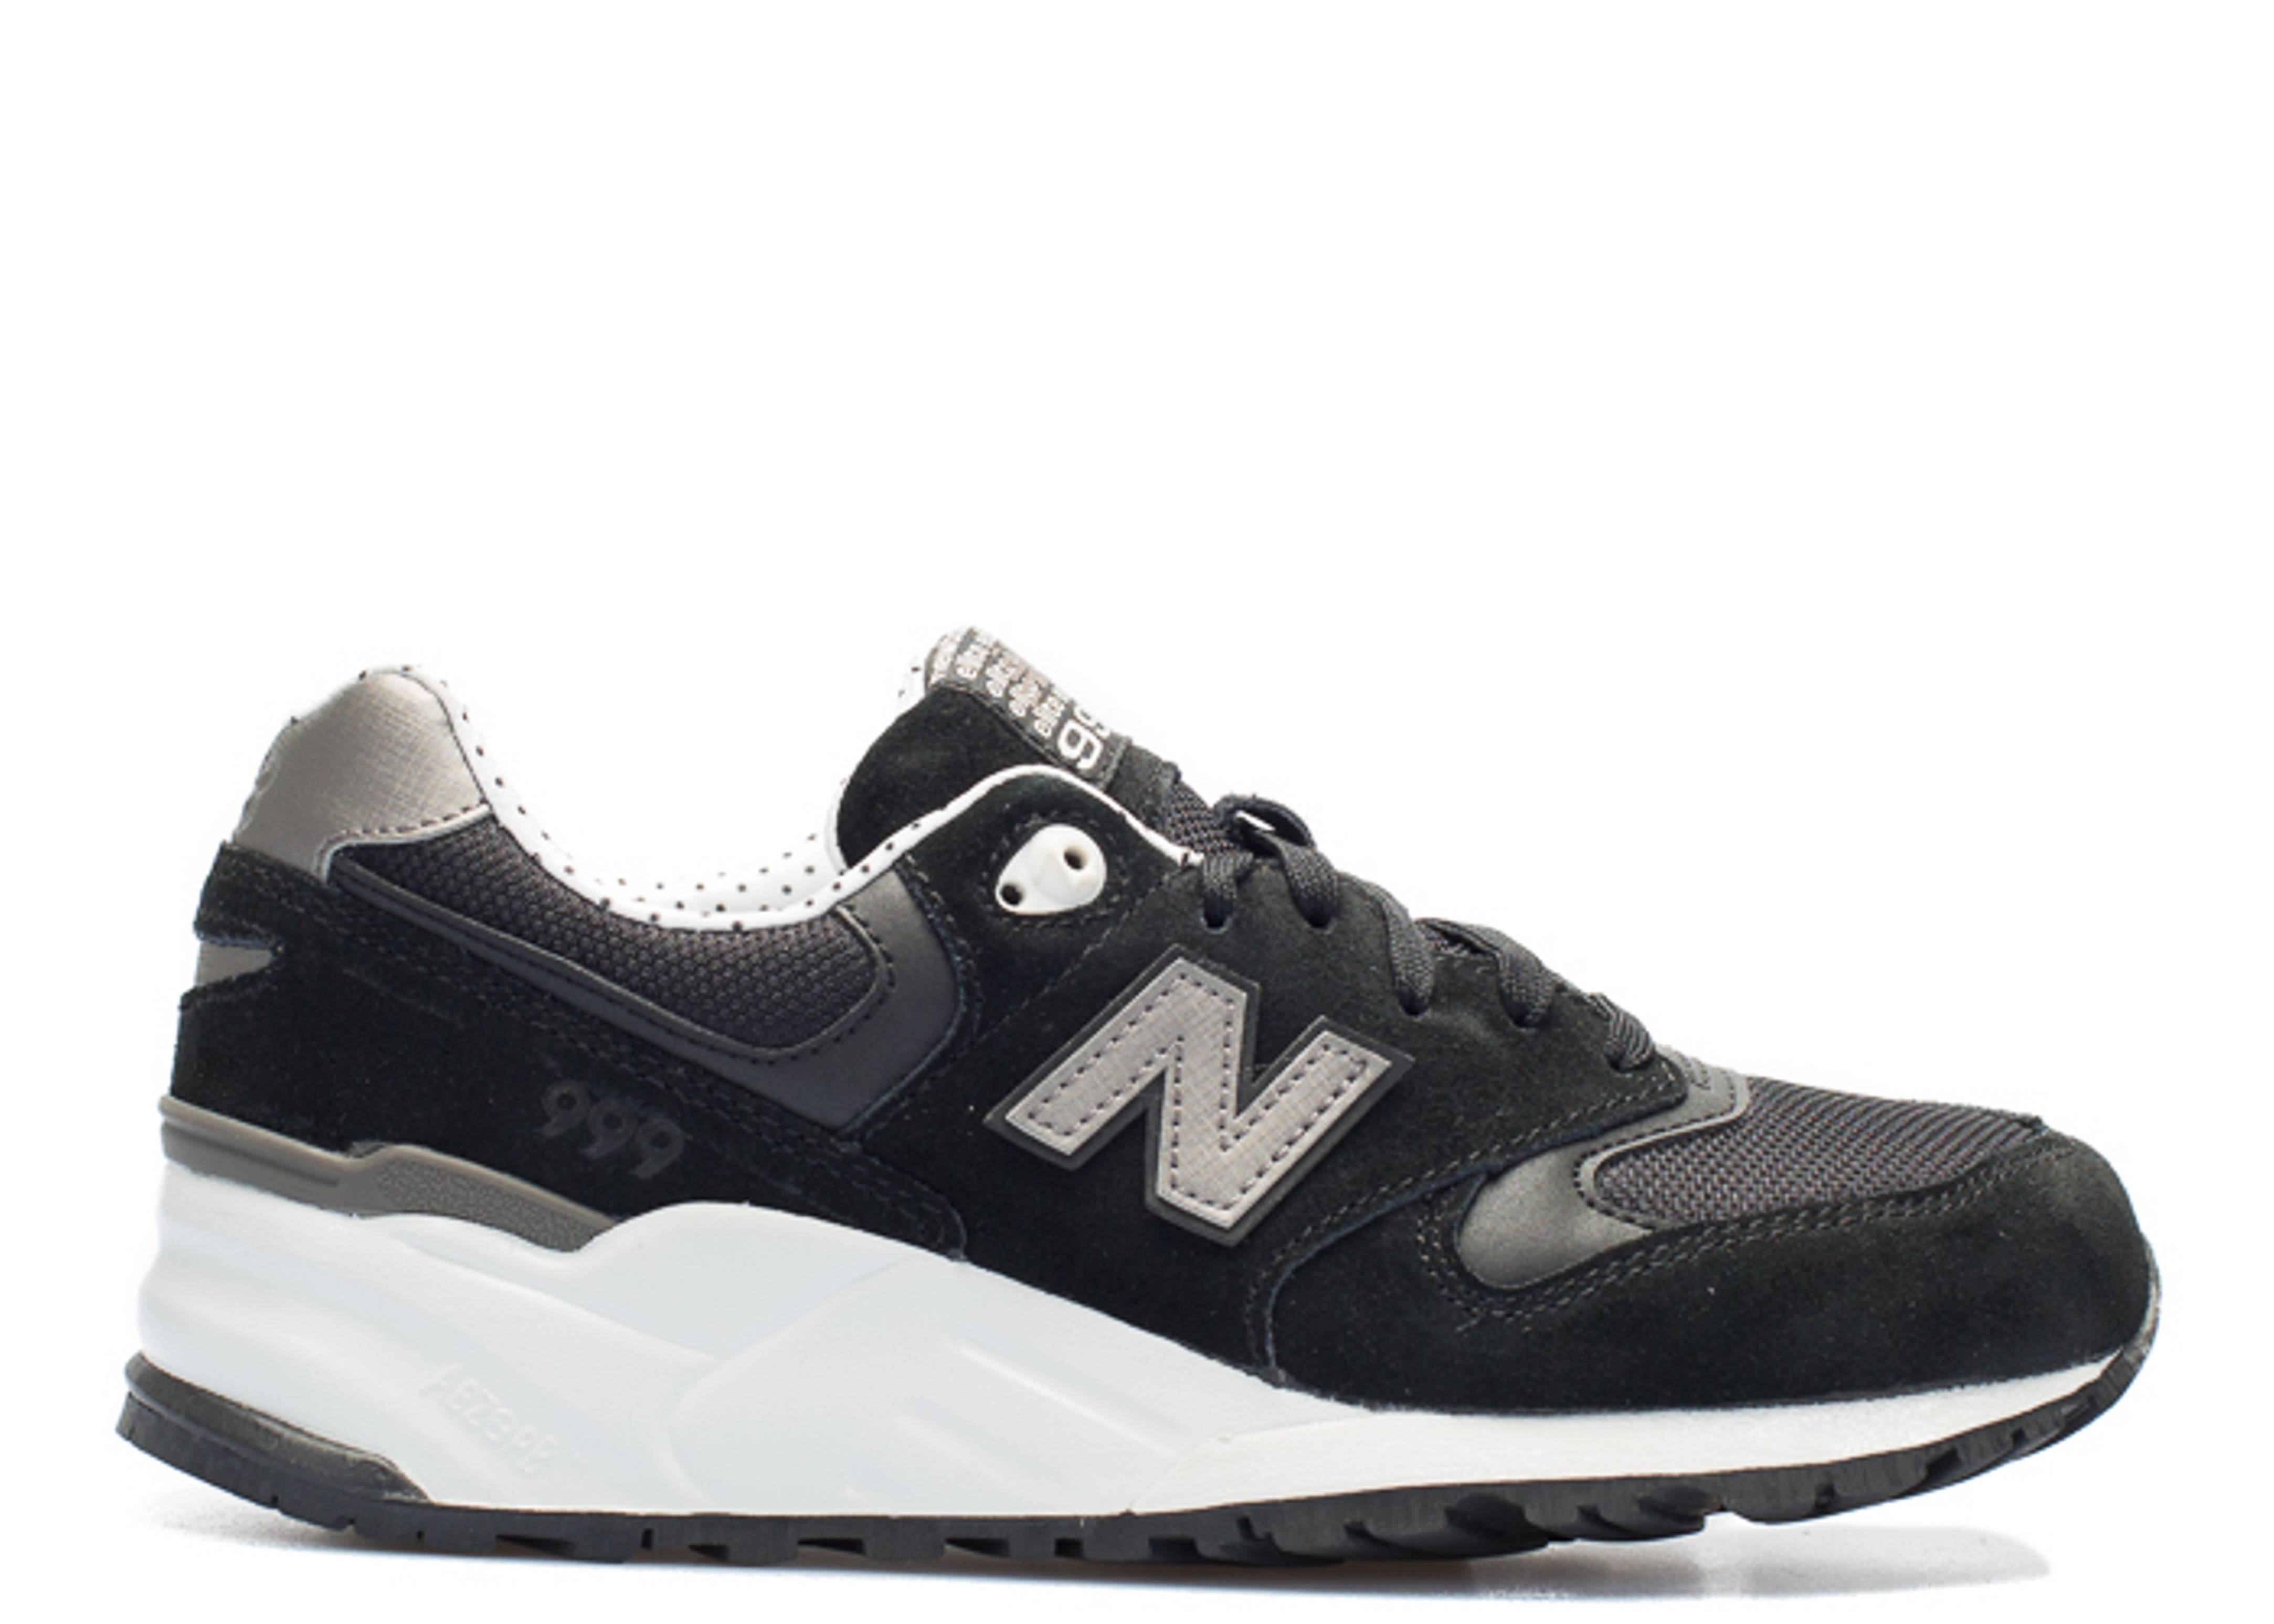 buy online 1eb8e f6e9d new balance 999 elite edition black